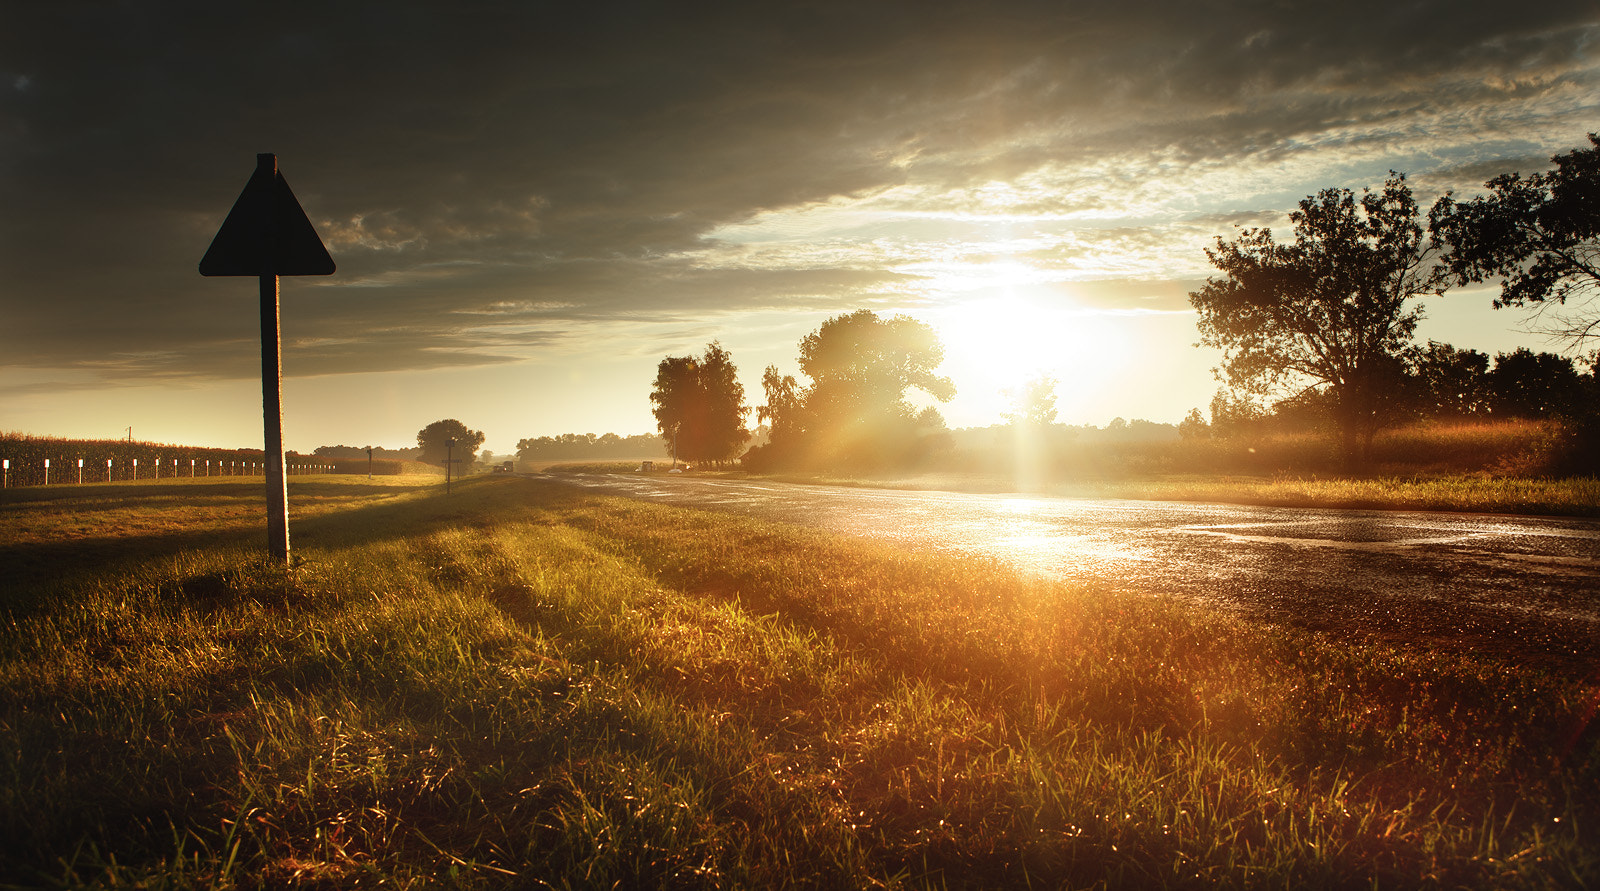 Photograph SunLight after rain by Arsen Stahiv on 500px